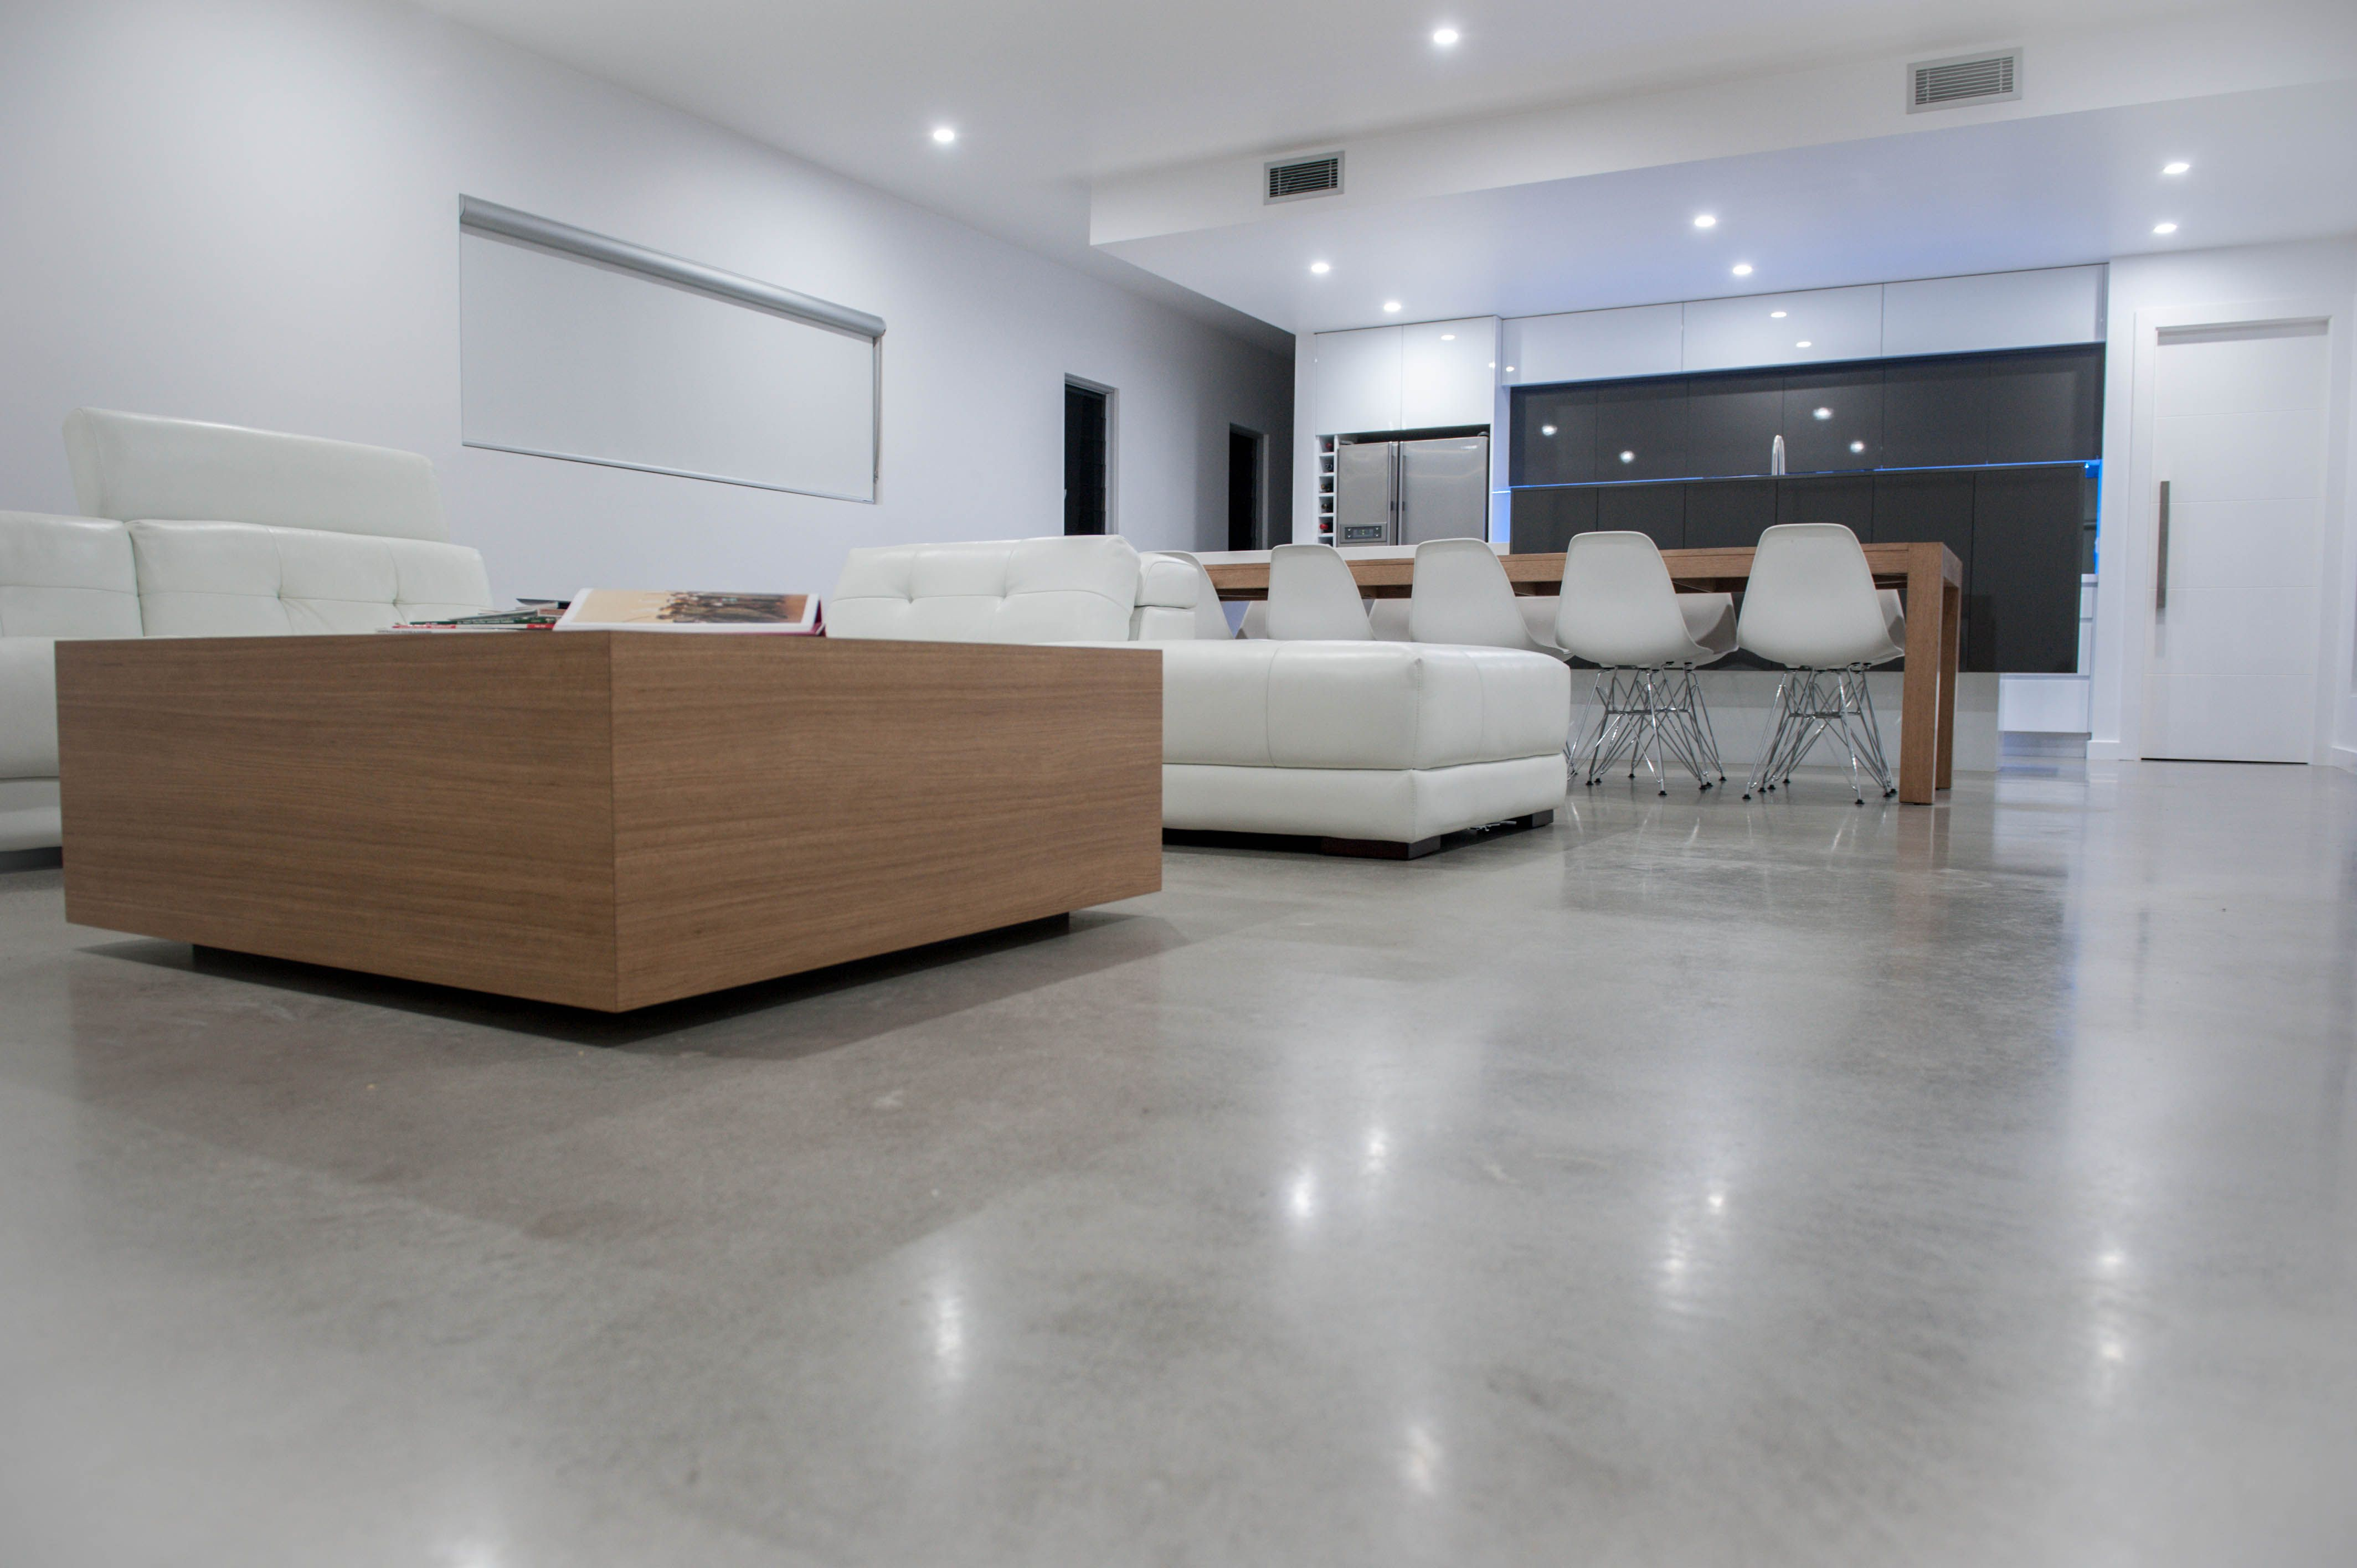 Estrich Bodenbelag Wohnbereich There Are Three Different Types Of Polished Concrete